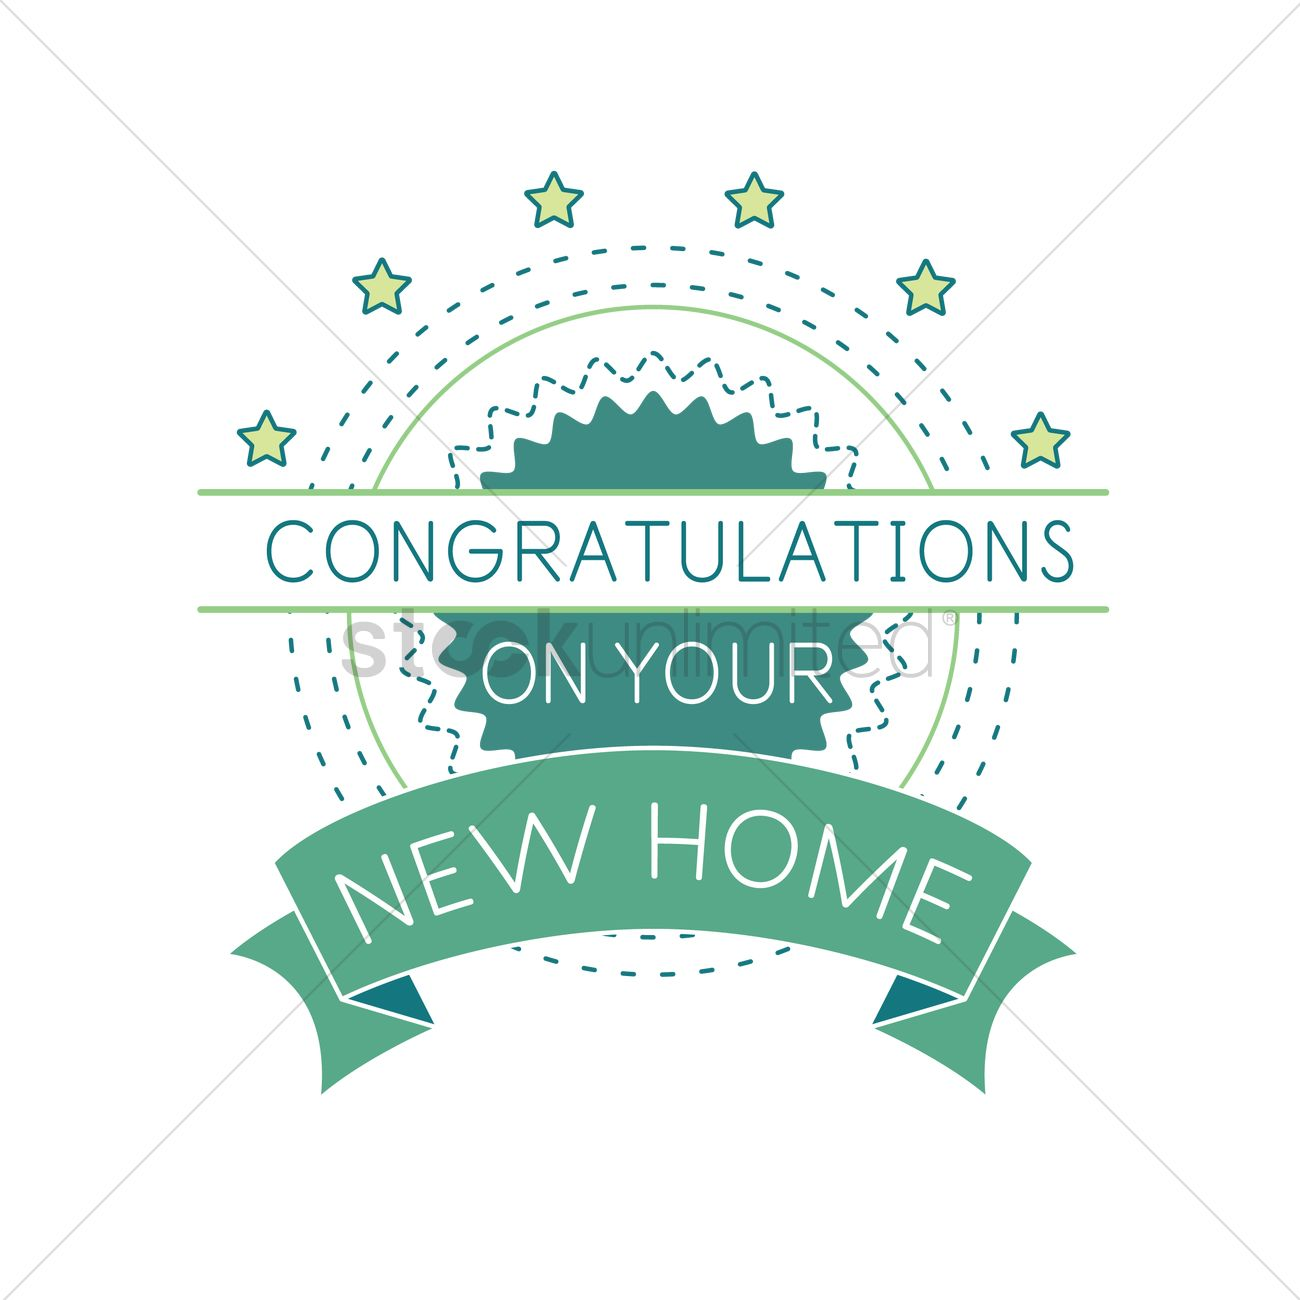 Congratulations on your new home label vector image for Enjoy your new home images